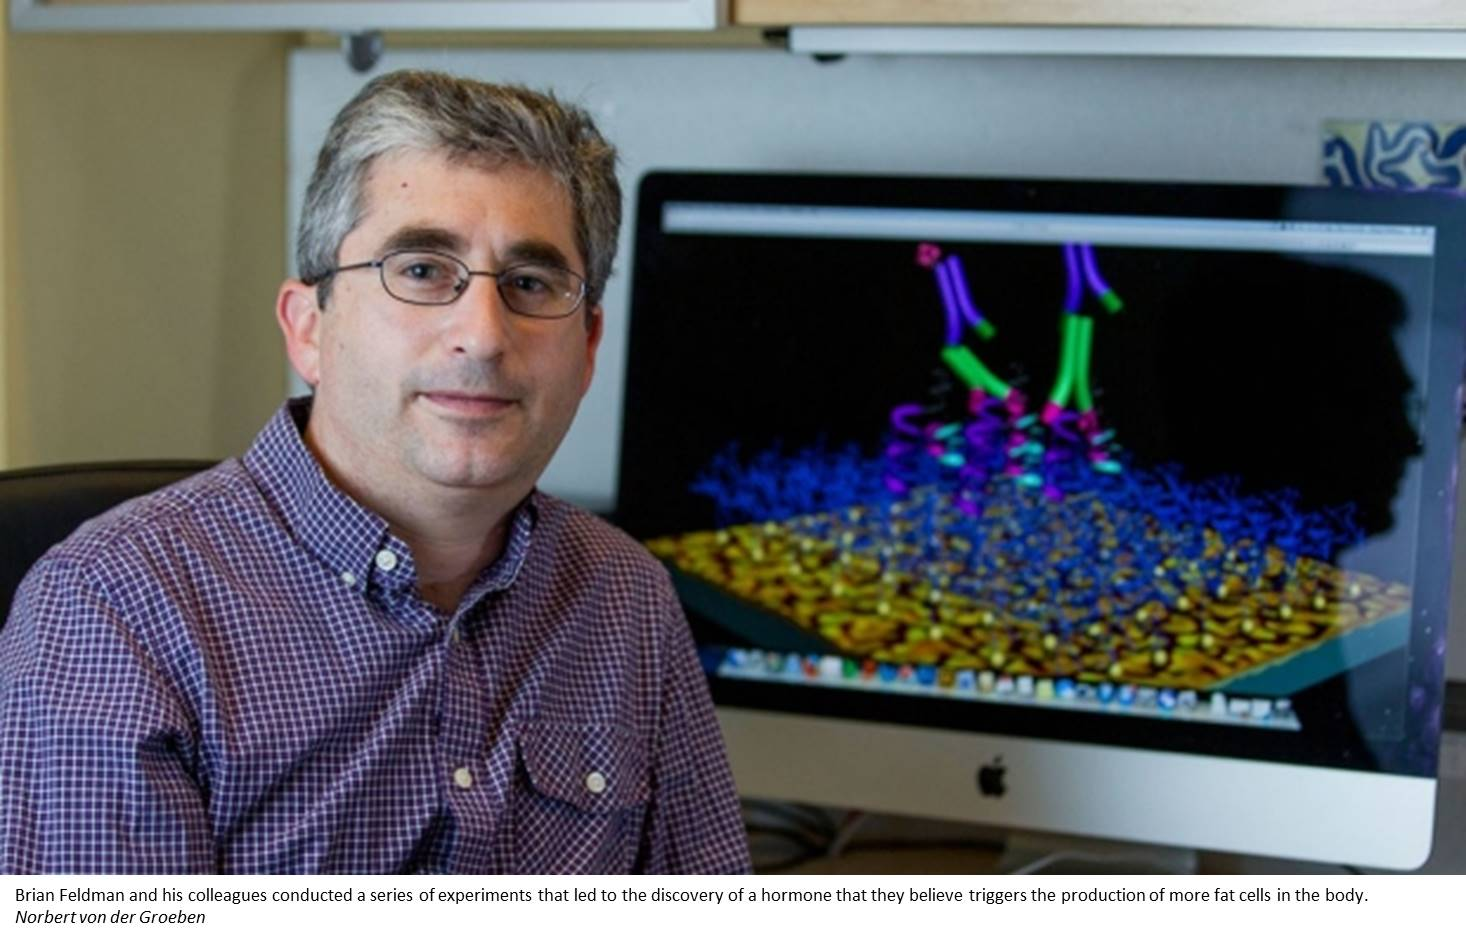 Hormone that controls maturation of fat cells discovered